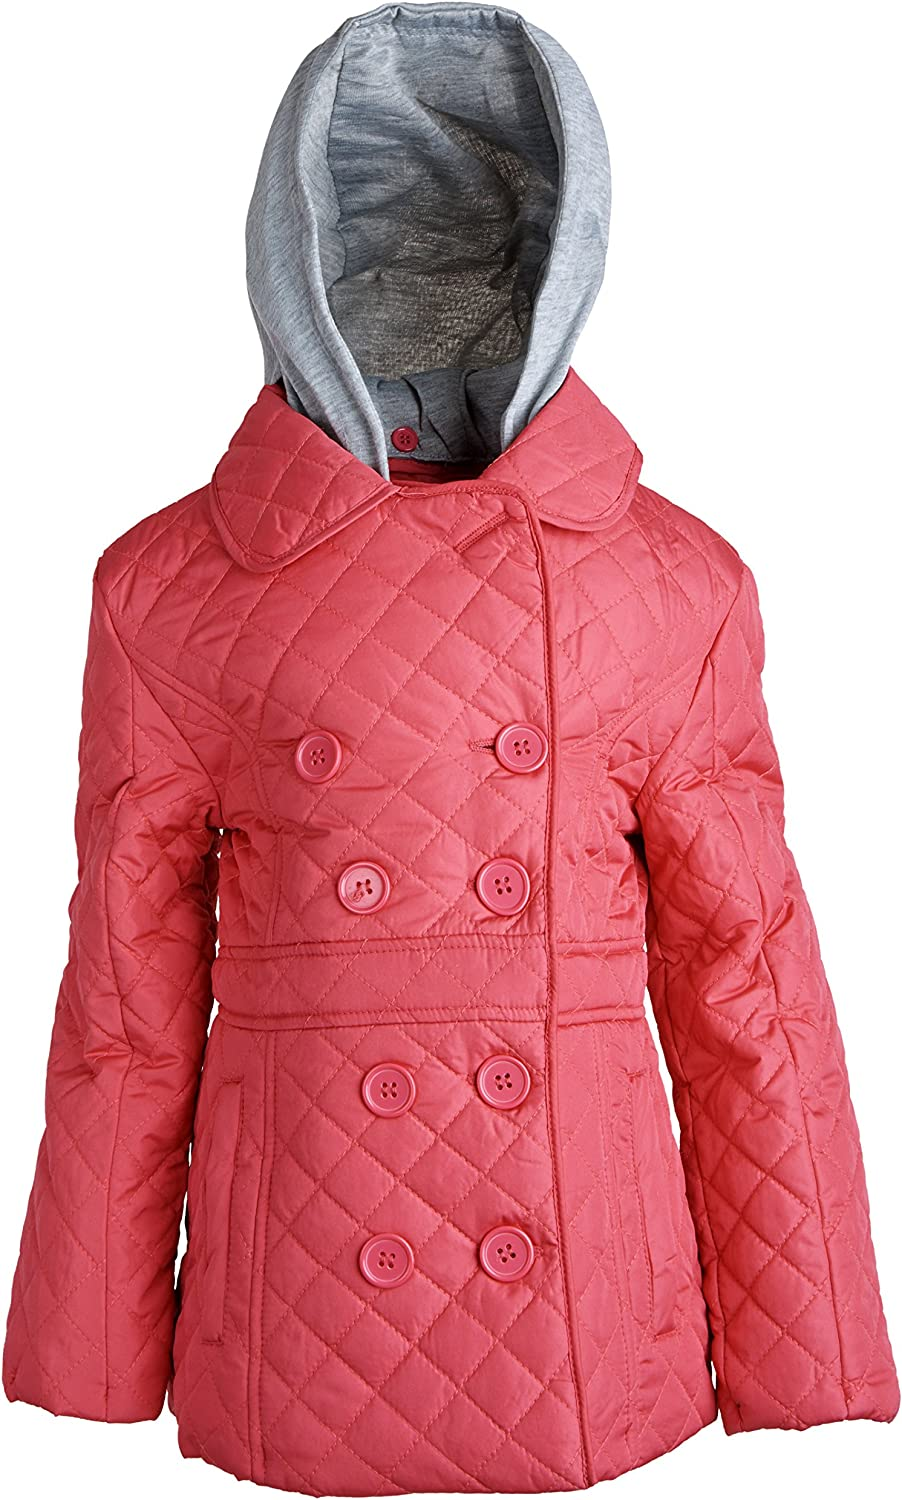 Urban Republic Girls Padded Quilted Spring Rain Jacket with Detachable Hood - Hot Pink (Size 4)